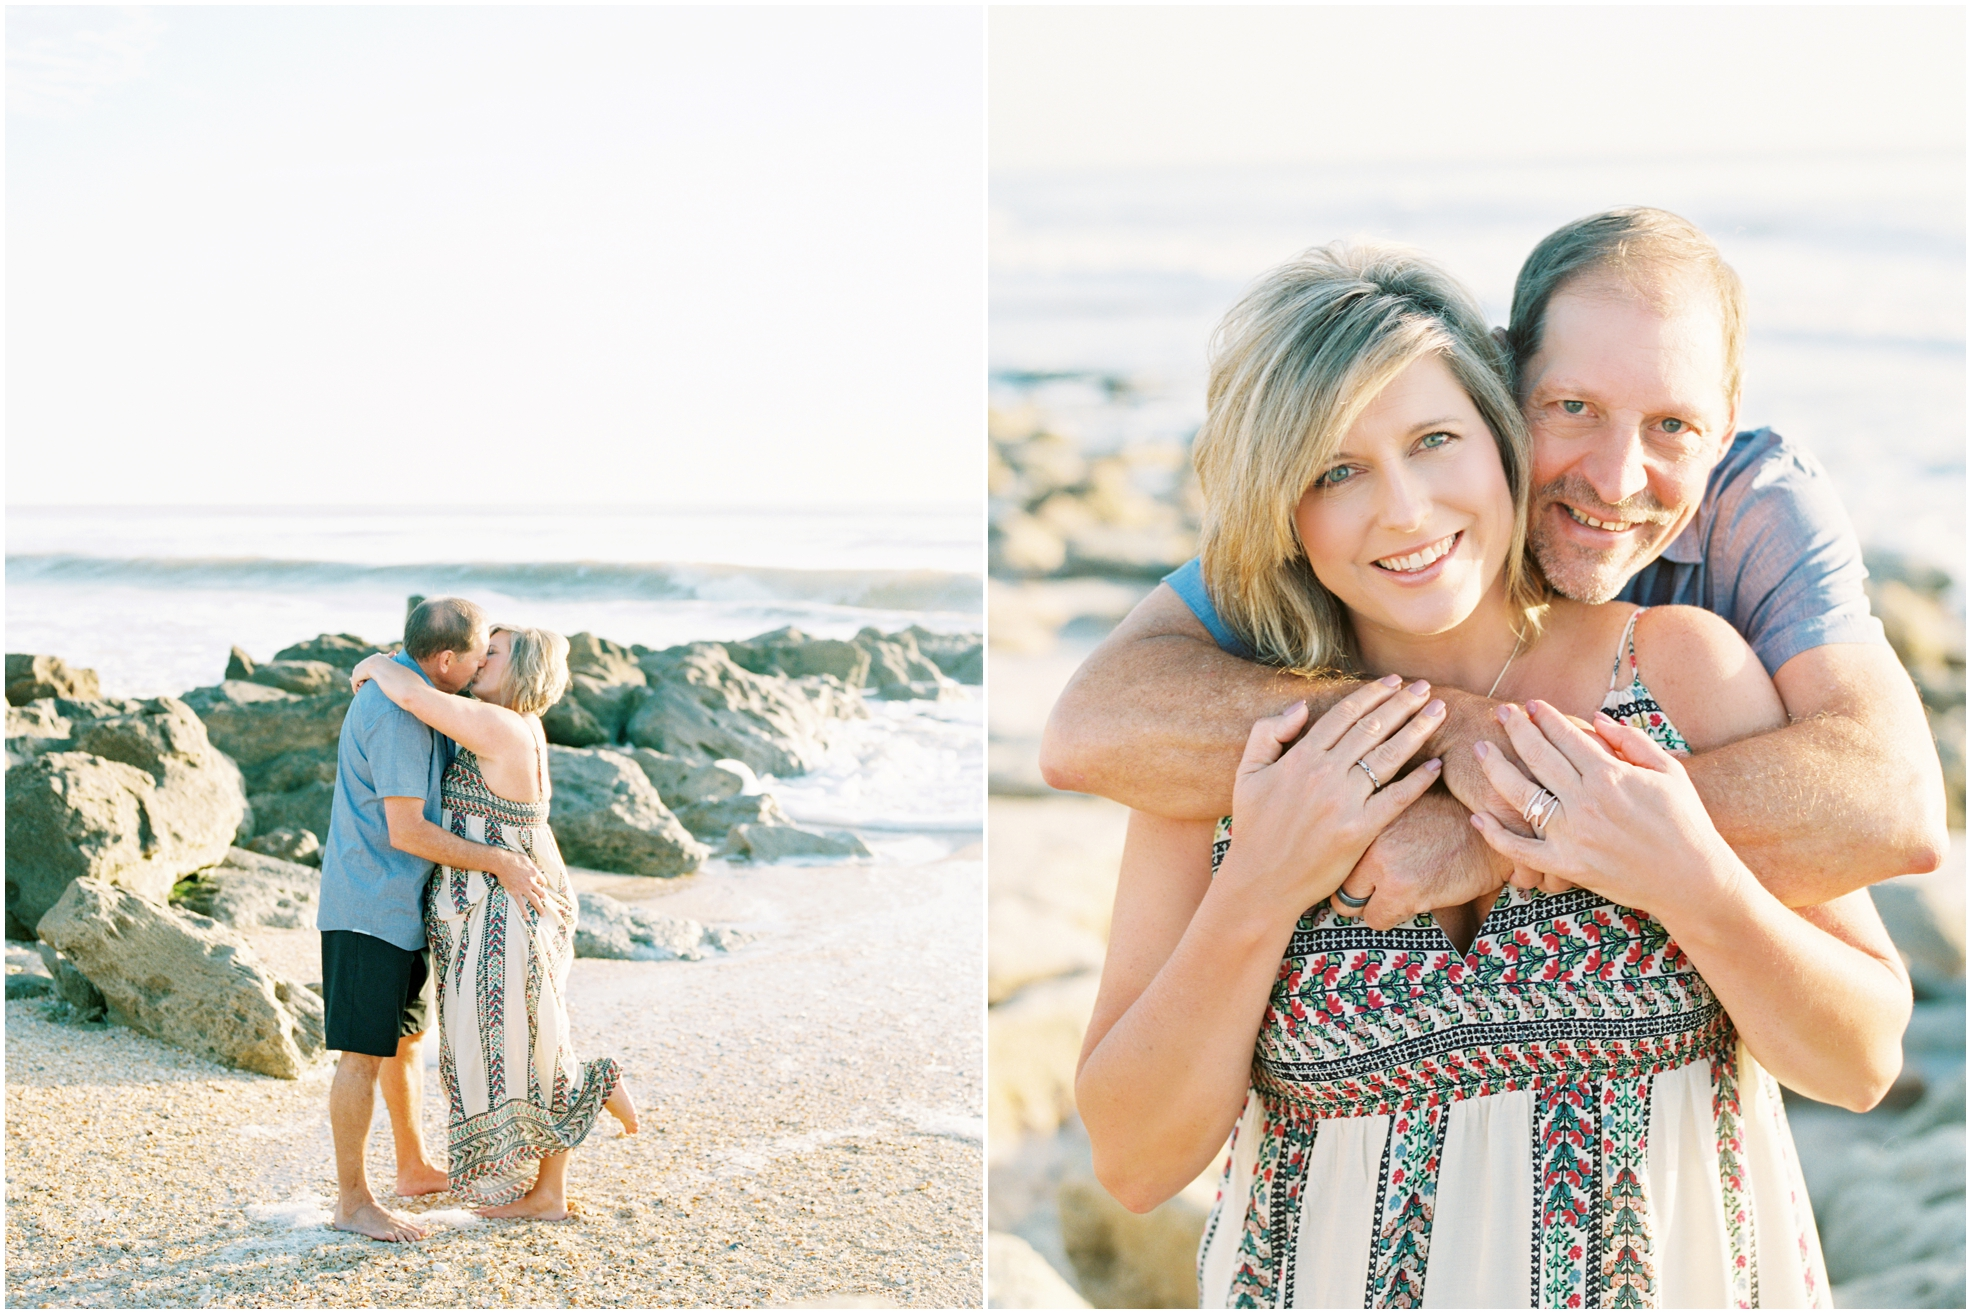 Lisa Silva Photography- Jacksonville, St. Augustine, Amelia Island, Ponte Vedra Beach, North East Florida Fine Art Film Photographer- Anniversary Session at Washington Oaks in Palm Coast, Florida_0010.jpg